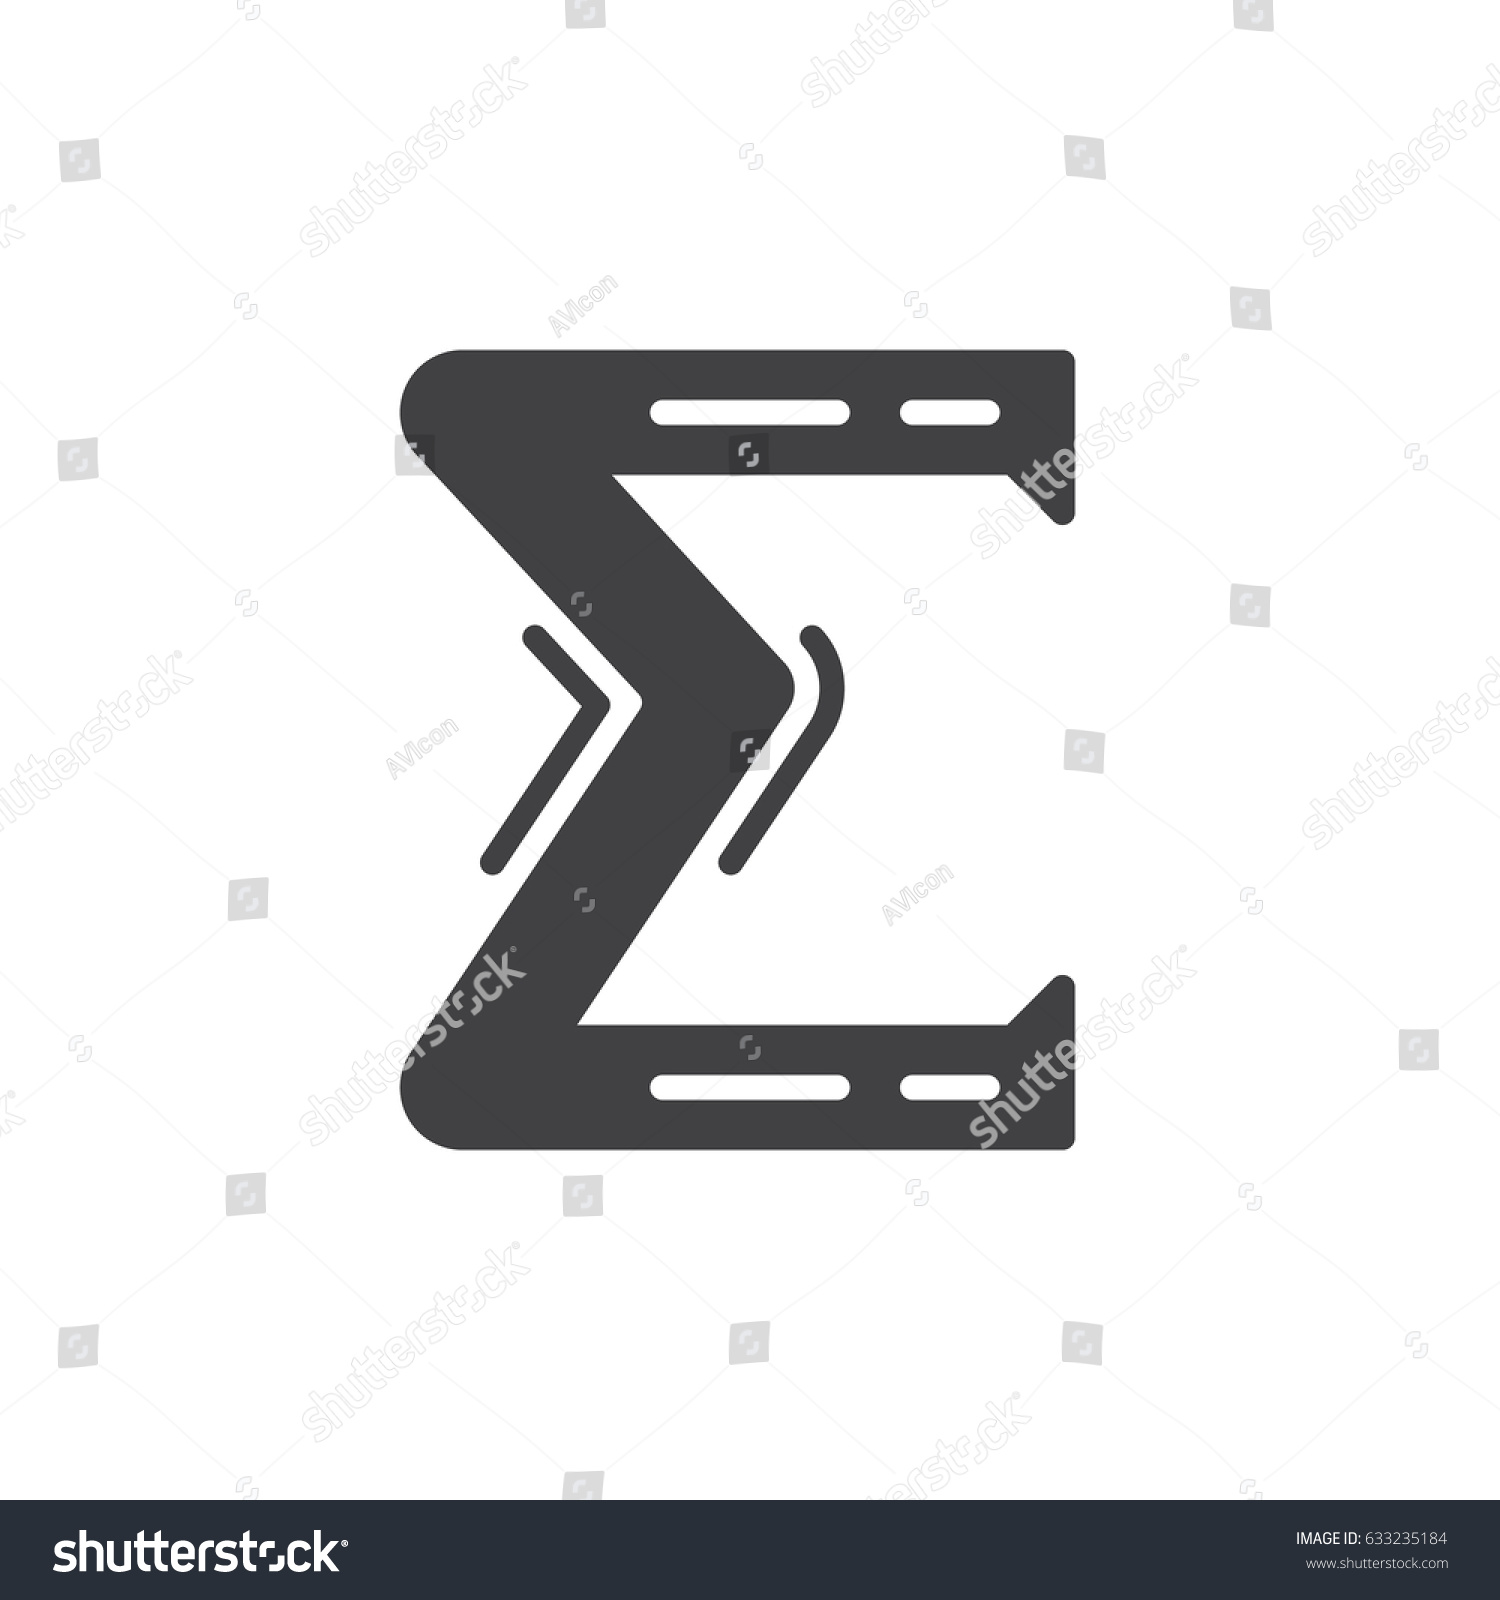 Greek letter sigma icon vector filled stock vector 633235184 greek letter sigma icon vector filled flat sign glyph style pictogram isolated on white biocorpaavc Choice Image